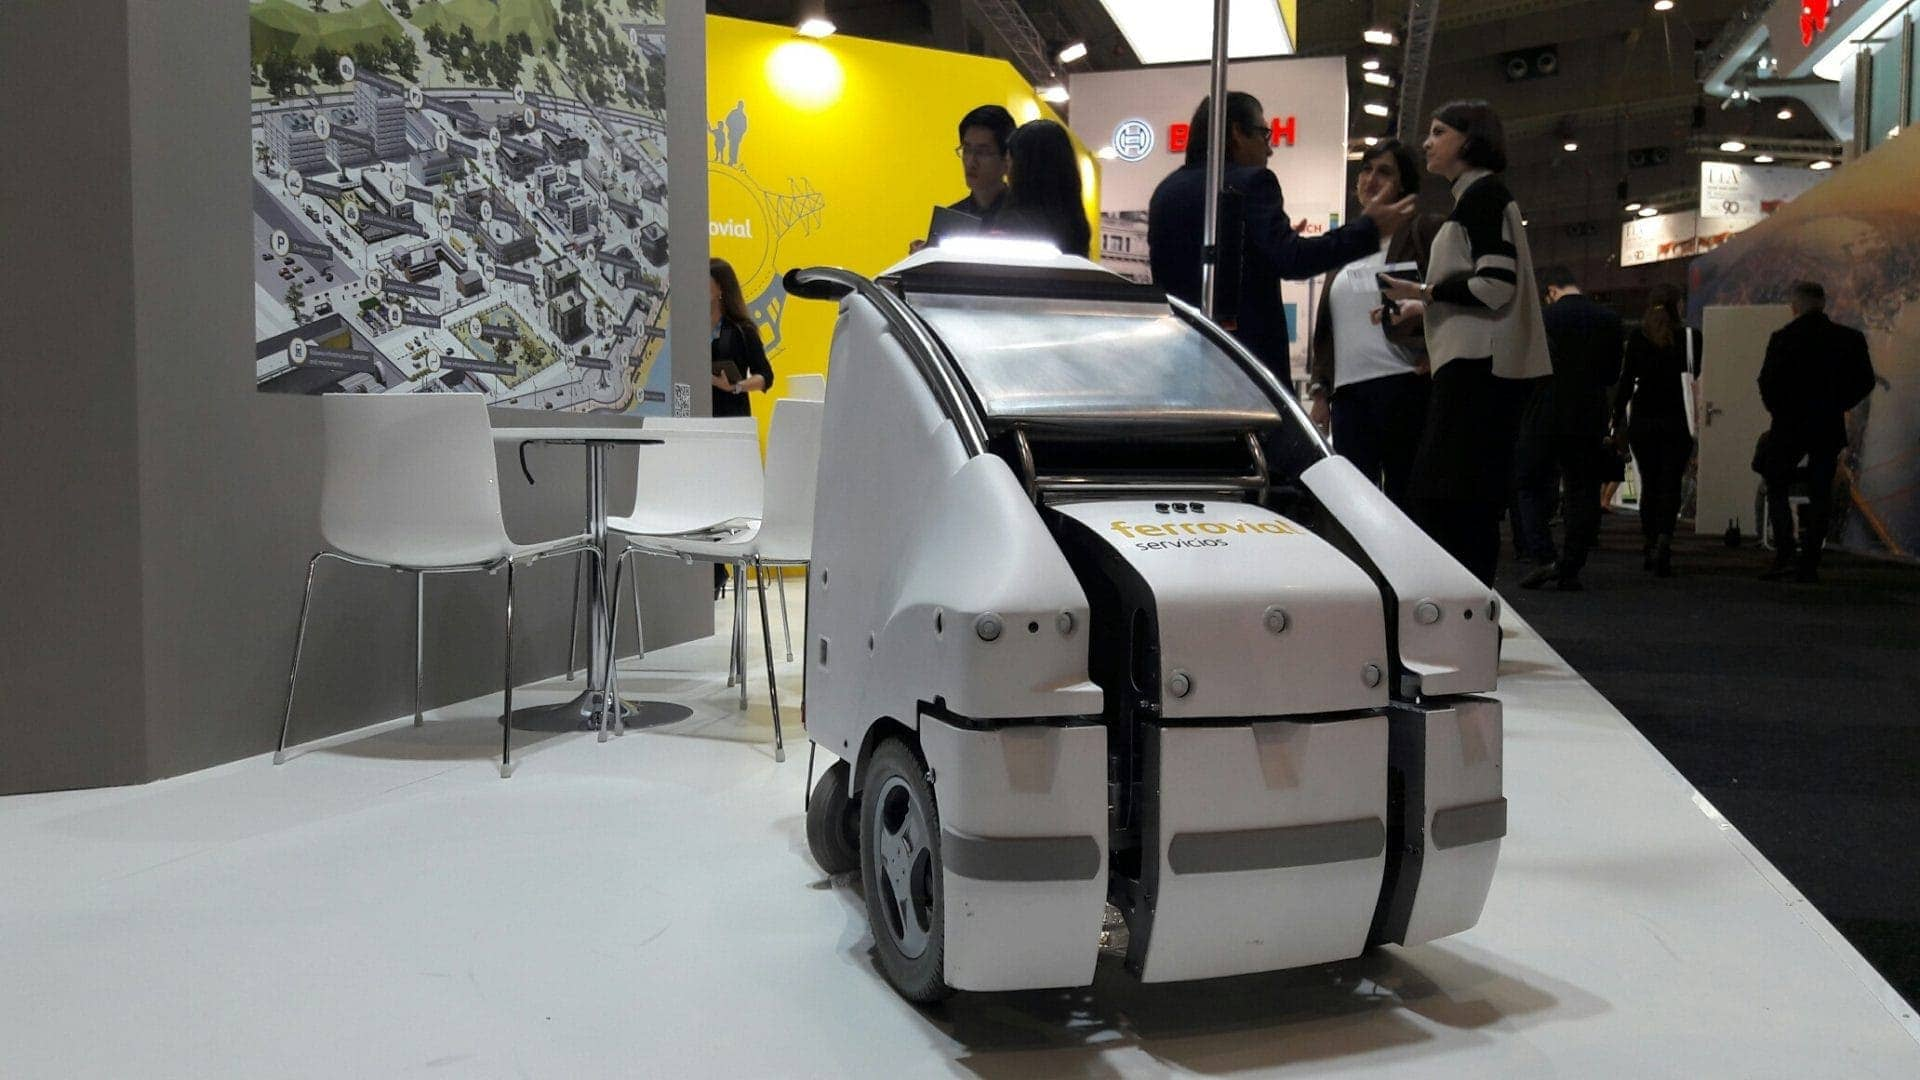 Global Robot Expo 2017 Ferrovial reto Madrid